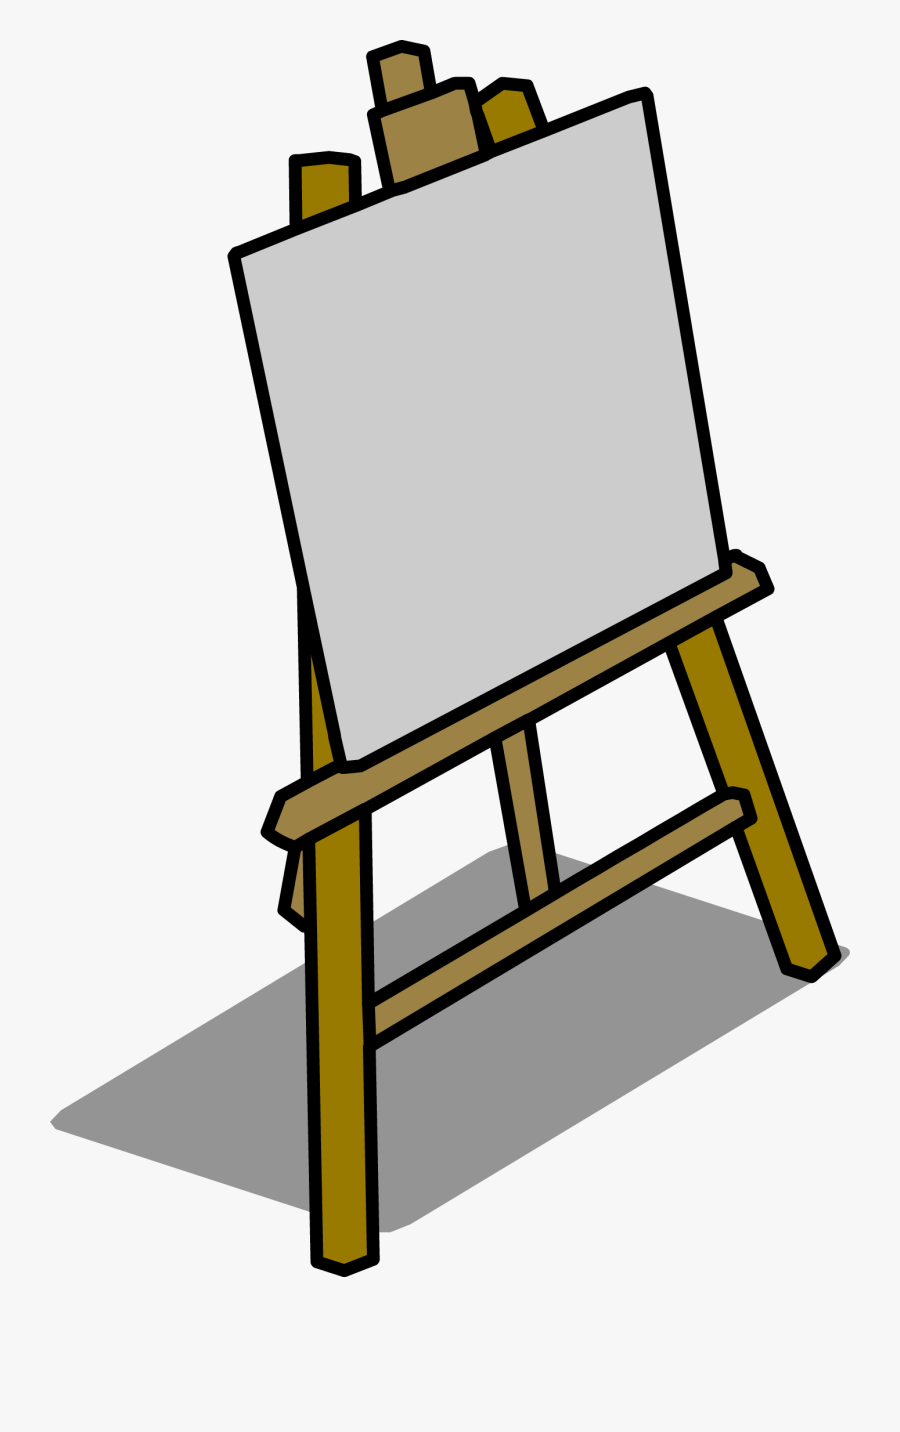 Easel Png - Caballete Animado Png, Transparent Clipart